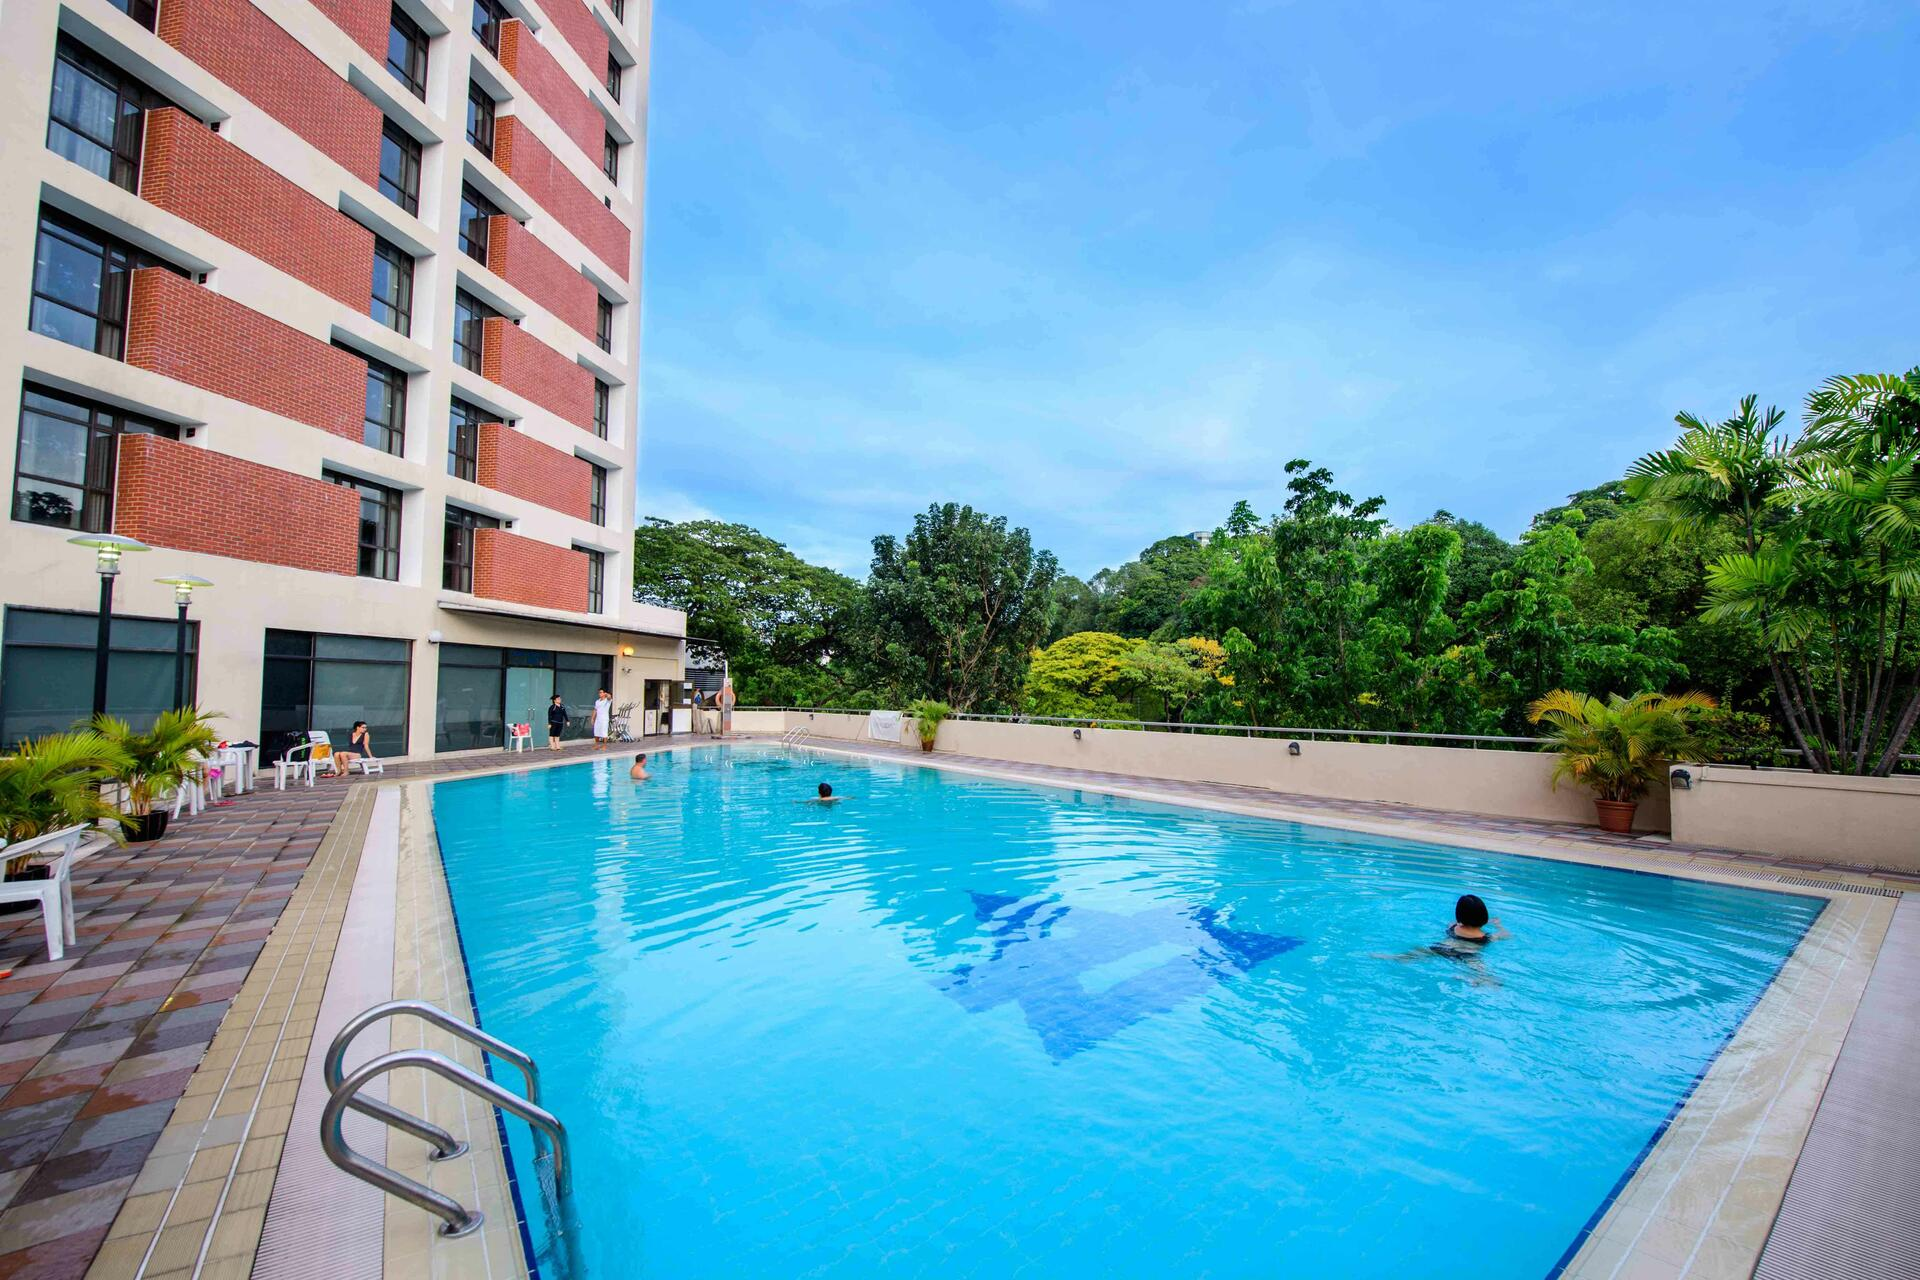 YWCA Fort Canning Lodge Outdoor Swimming Pool